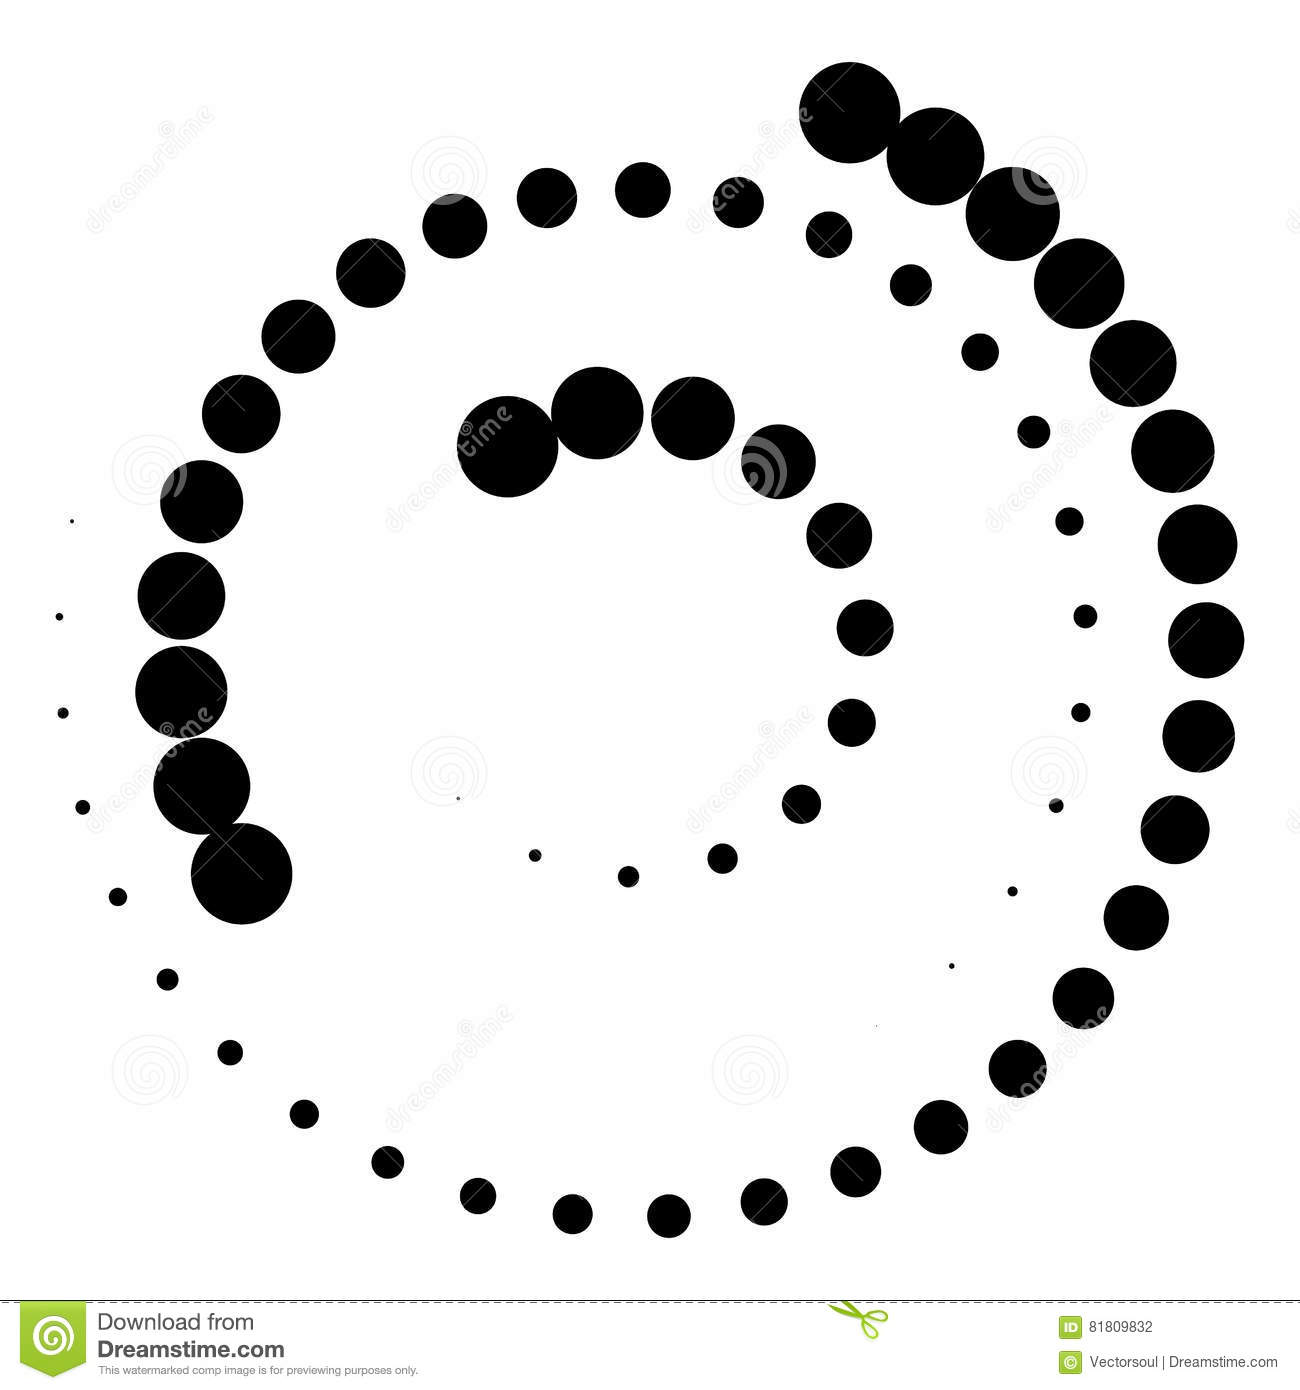 Spiral element with concentric circles. Abstract decorative elem